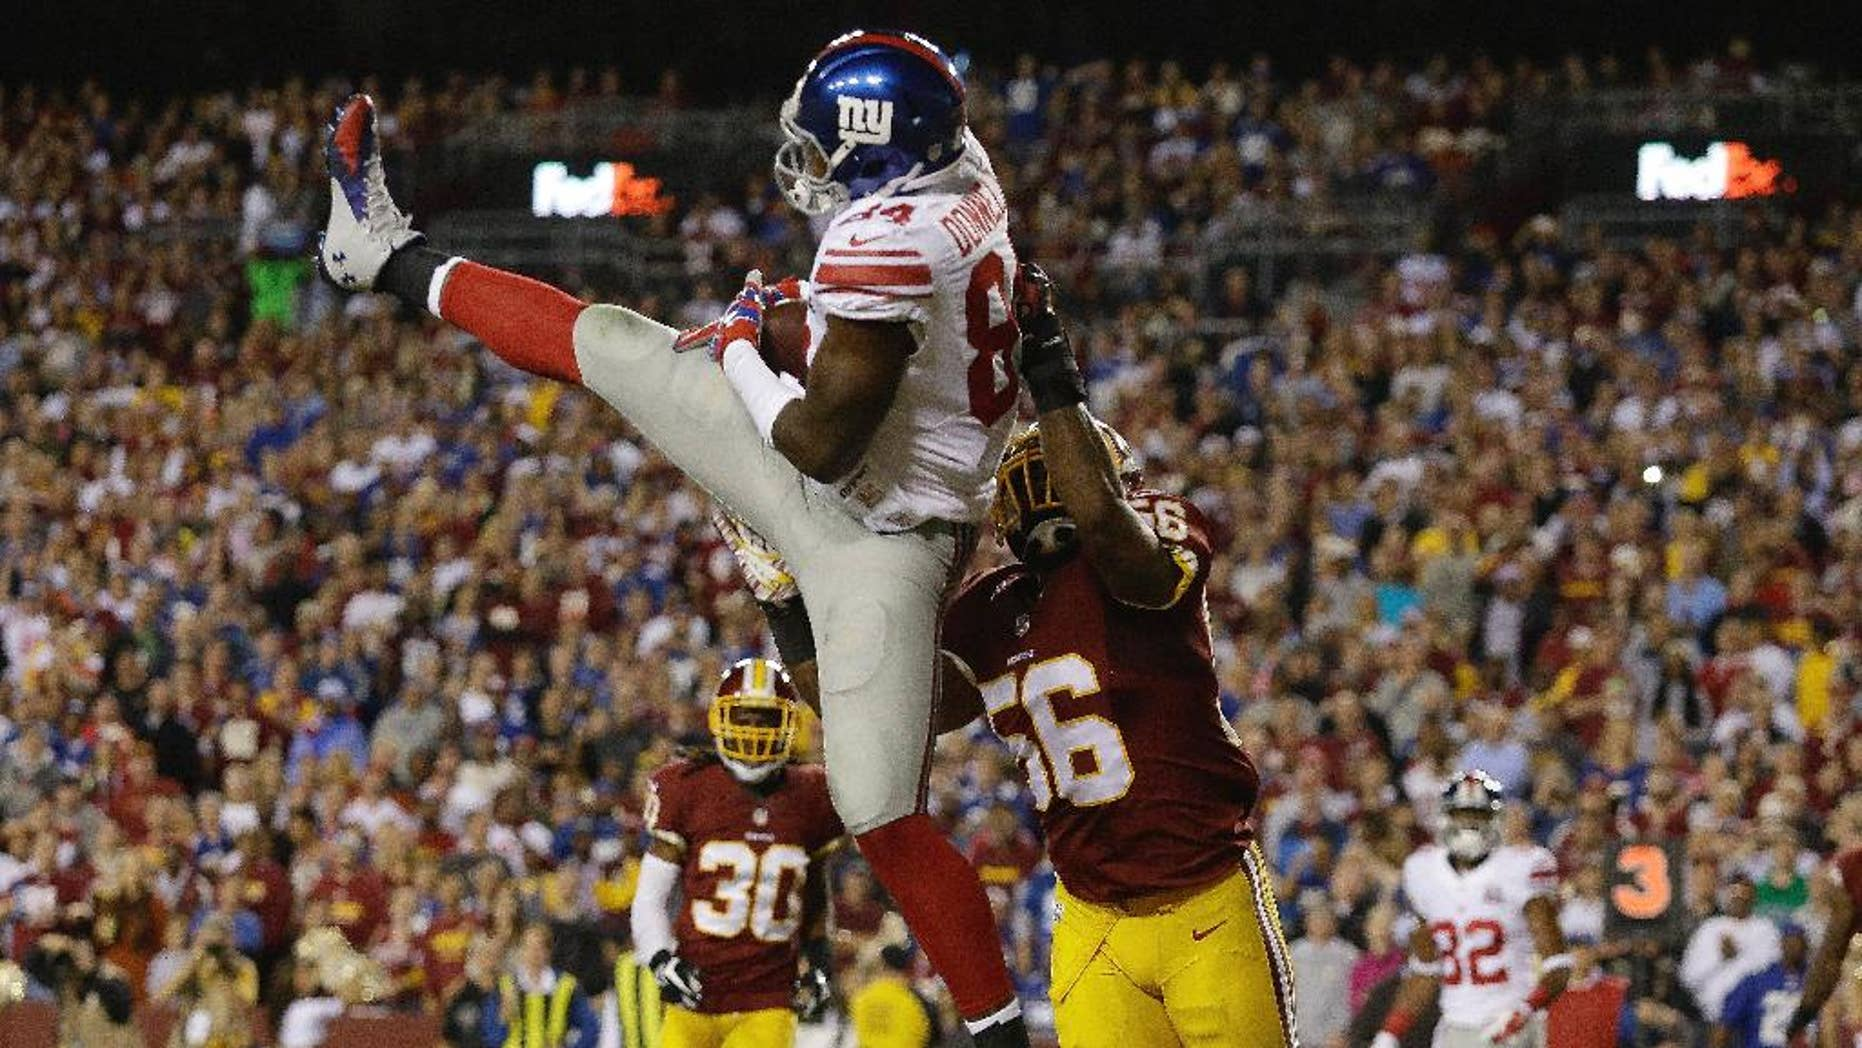 New York Giants tight end Larry Donnell (84) pulls in a touchdown pass under pressure from Washington Redskins inside linebacker Perry Riley (56) during the first half of an NFL Thursday night football game in Landover, Md., Thursday, Sept. 25, 2014. (AP Photo/Patrick Semansky)